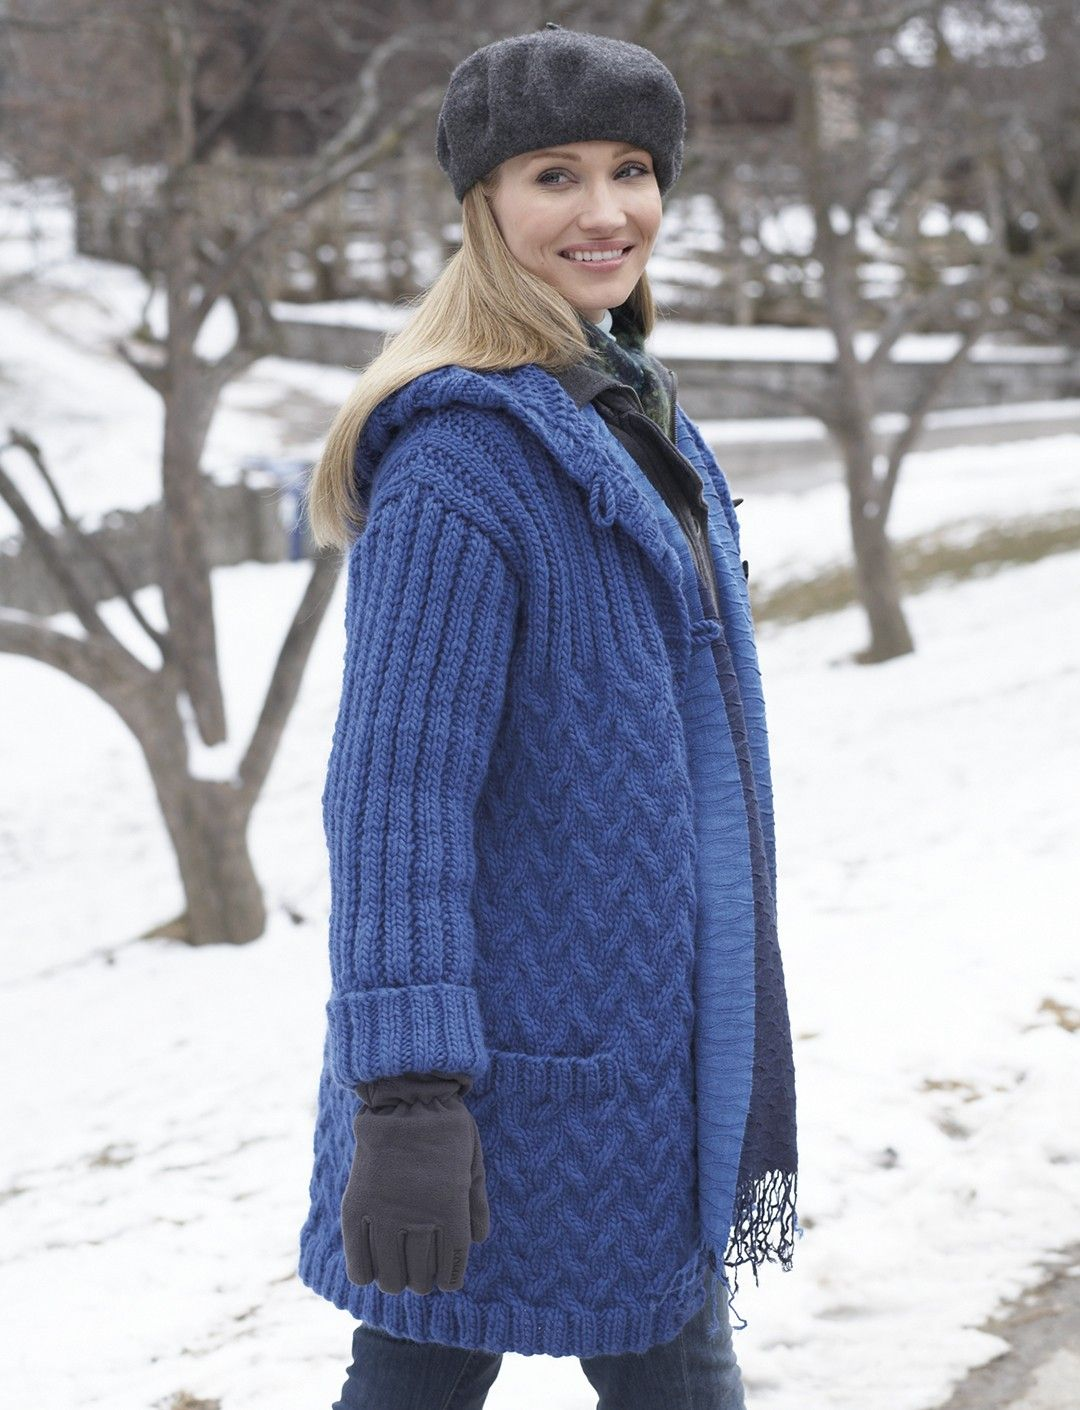 Yarnspirations patons car coat with hood patterns patons car coat with hood knit pattern bankloansurffo Gallery